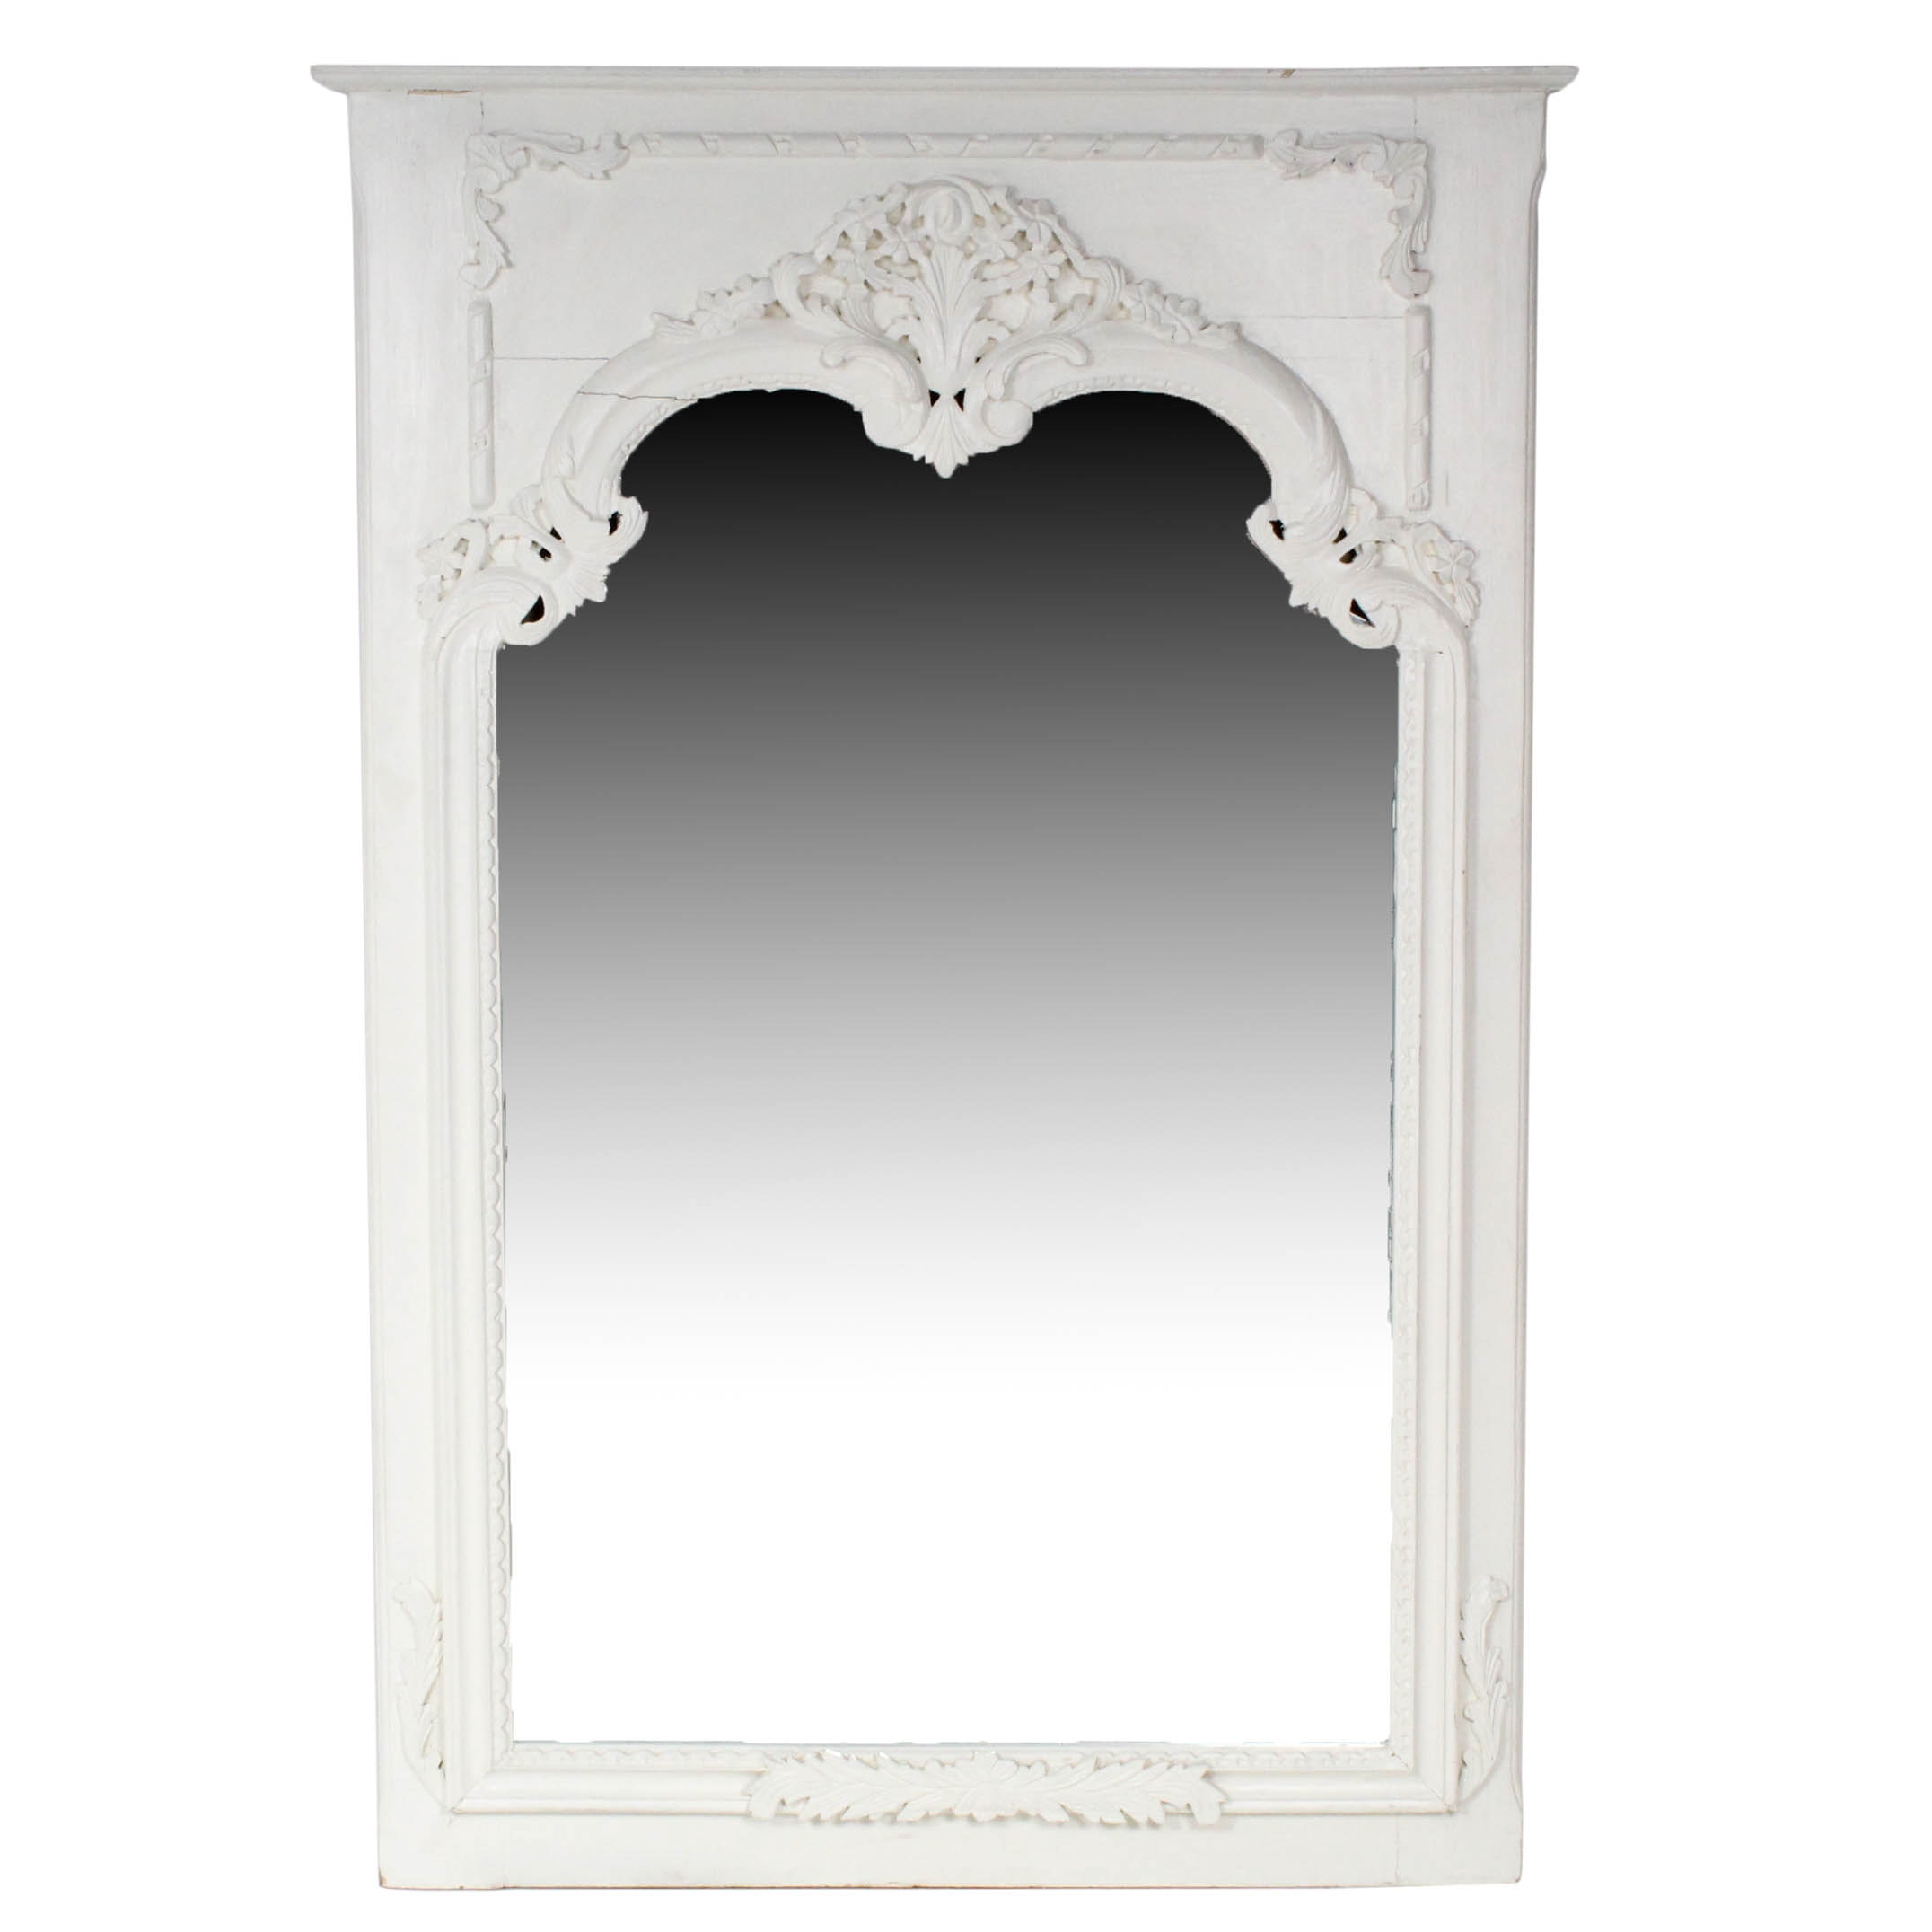 French Provincial Style Painted Carved Wood Framed Wall Mirror